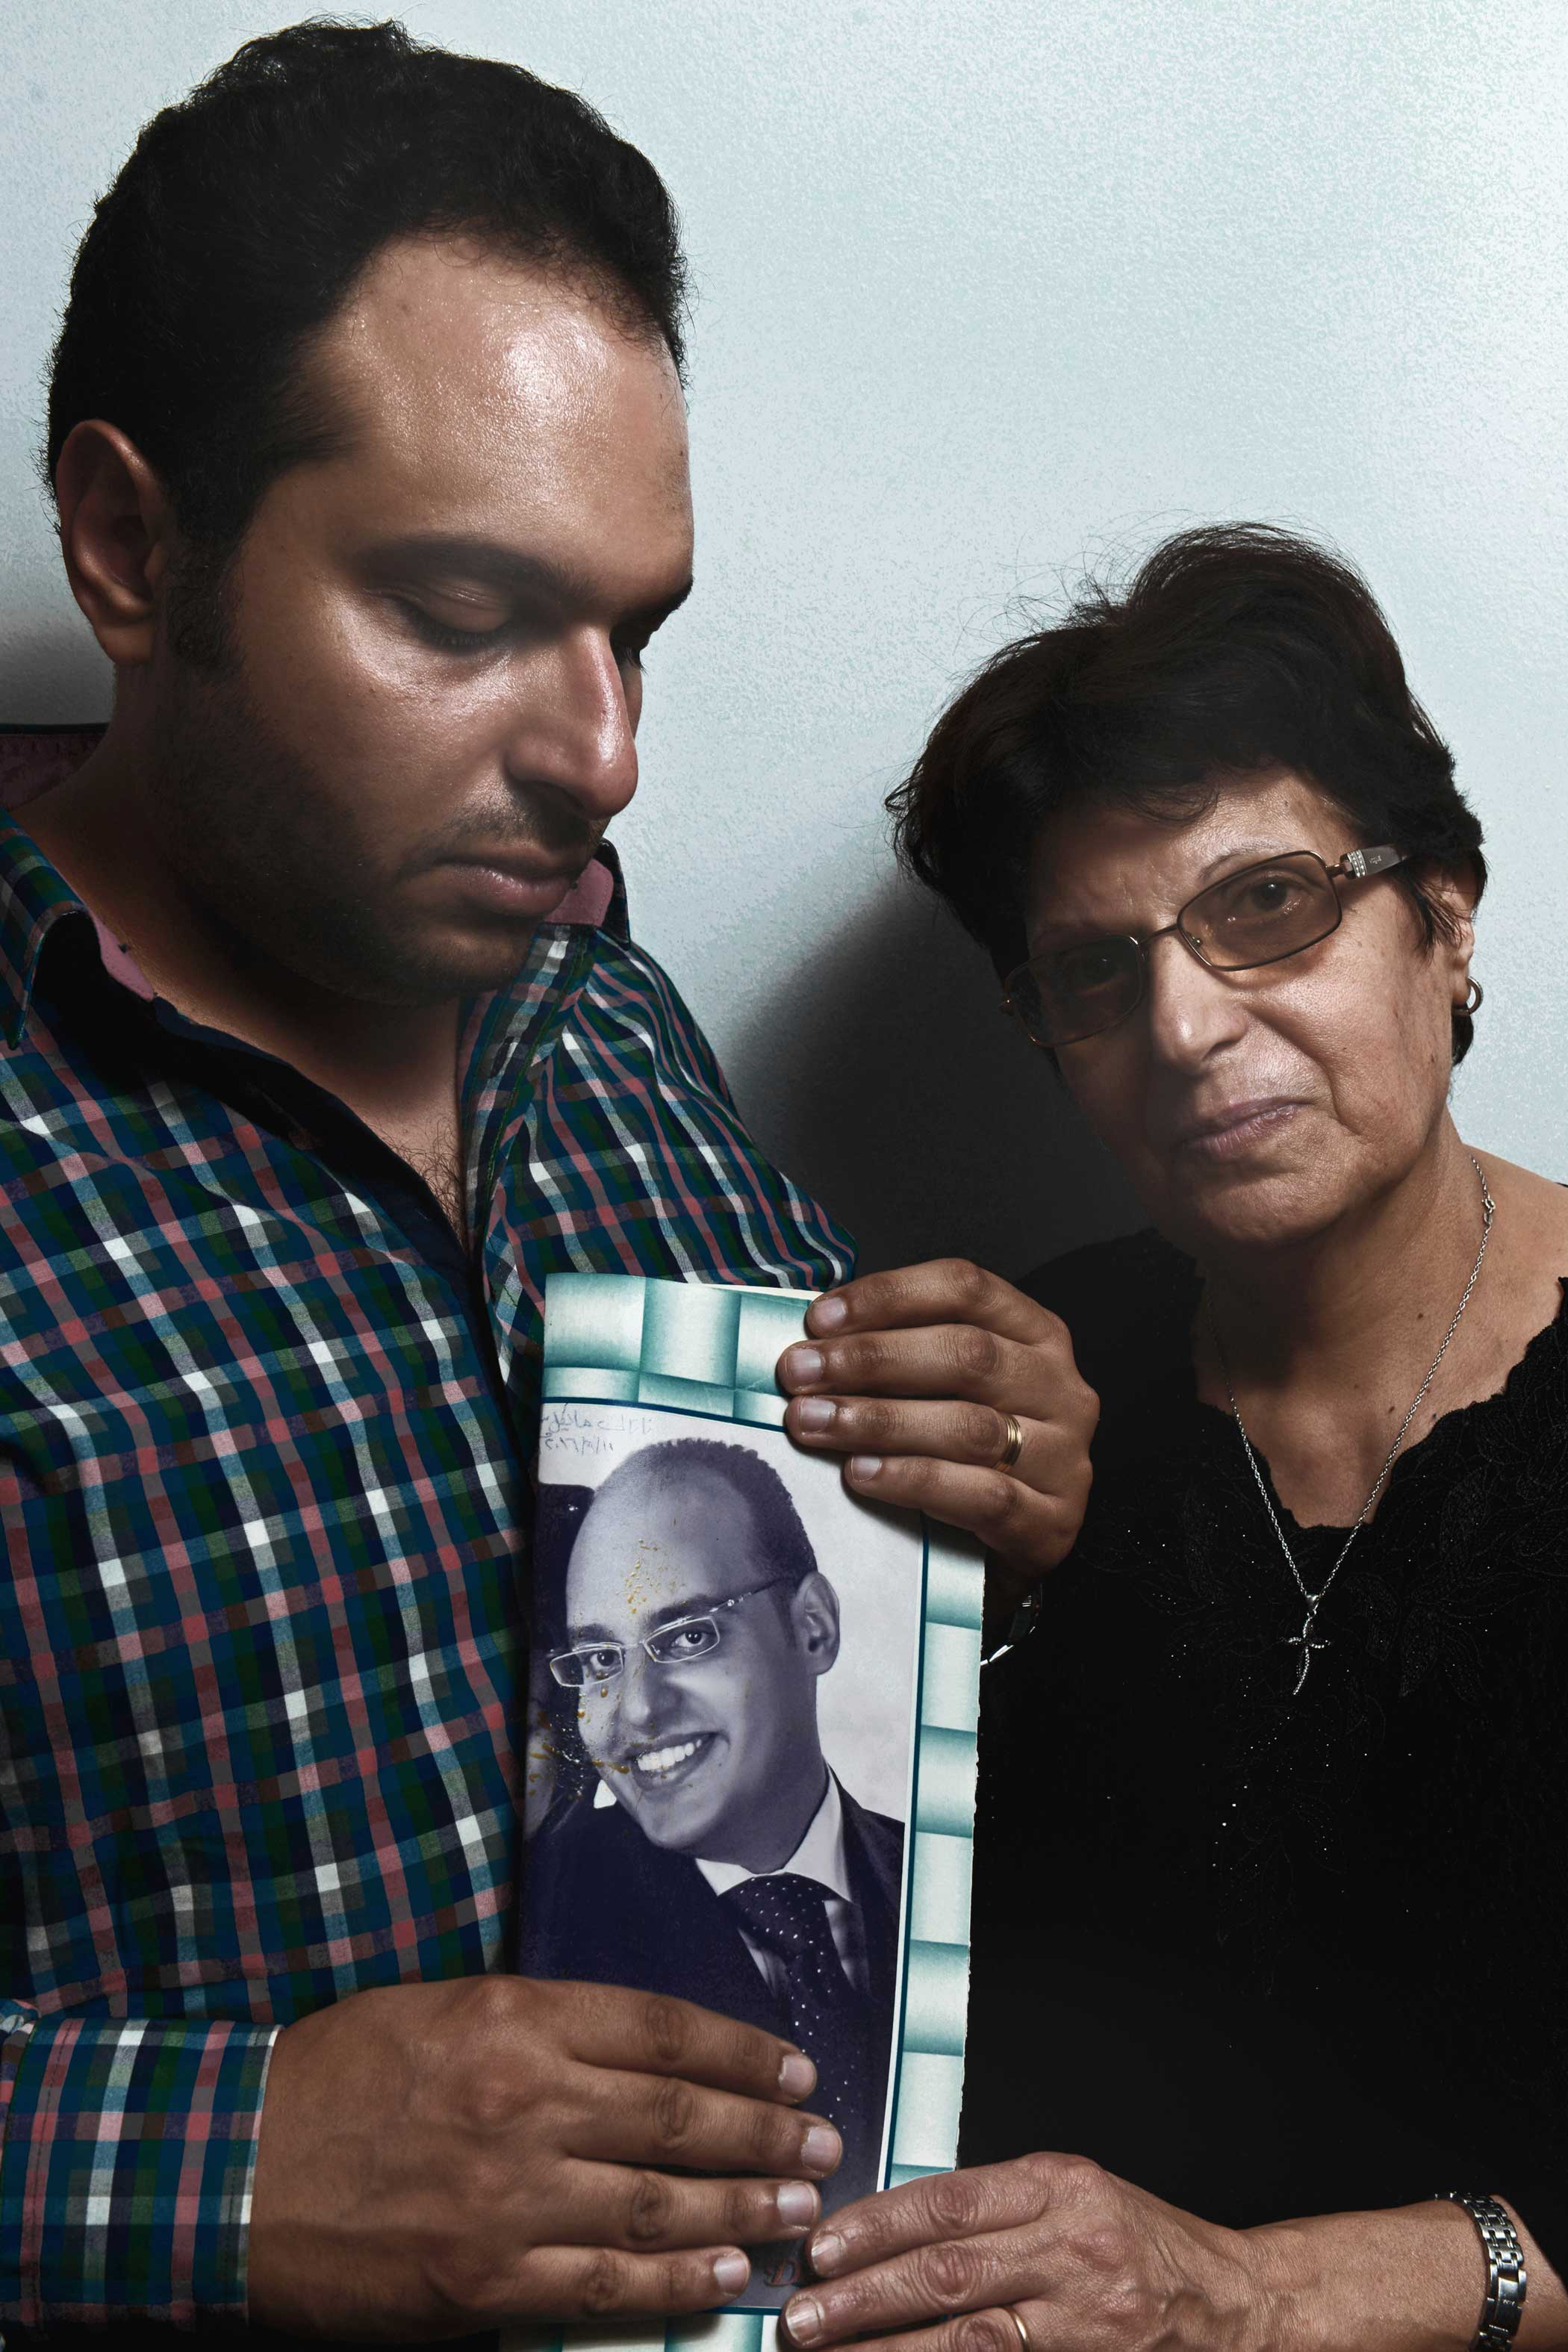 Mark Samir Iskander, 30, and Salwa Nemr Youssef, 60, hold a photo of Michael Samir Iskander, 36. Michael was Mark's brother and Salwa's son.  I rushed into the church when I heard the news. We could not find his body [in] the church. After looking for hours in hospitals, we found his body in the morgue,  Mark said.  Michael was the father of the house the moment his father passed away,  Salwa added.  He was my everything.